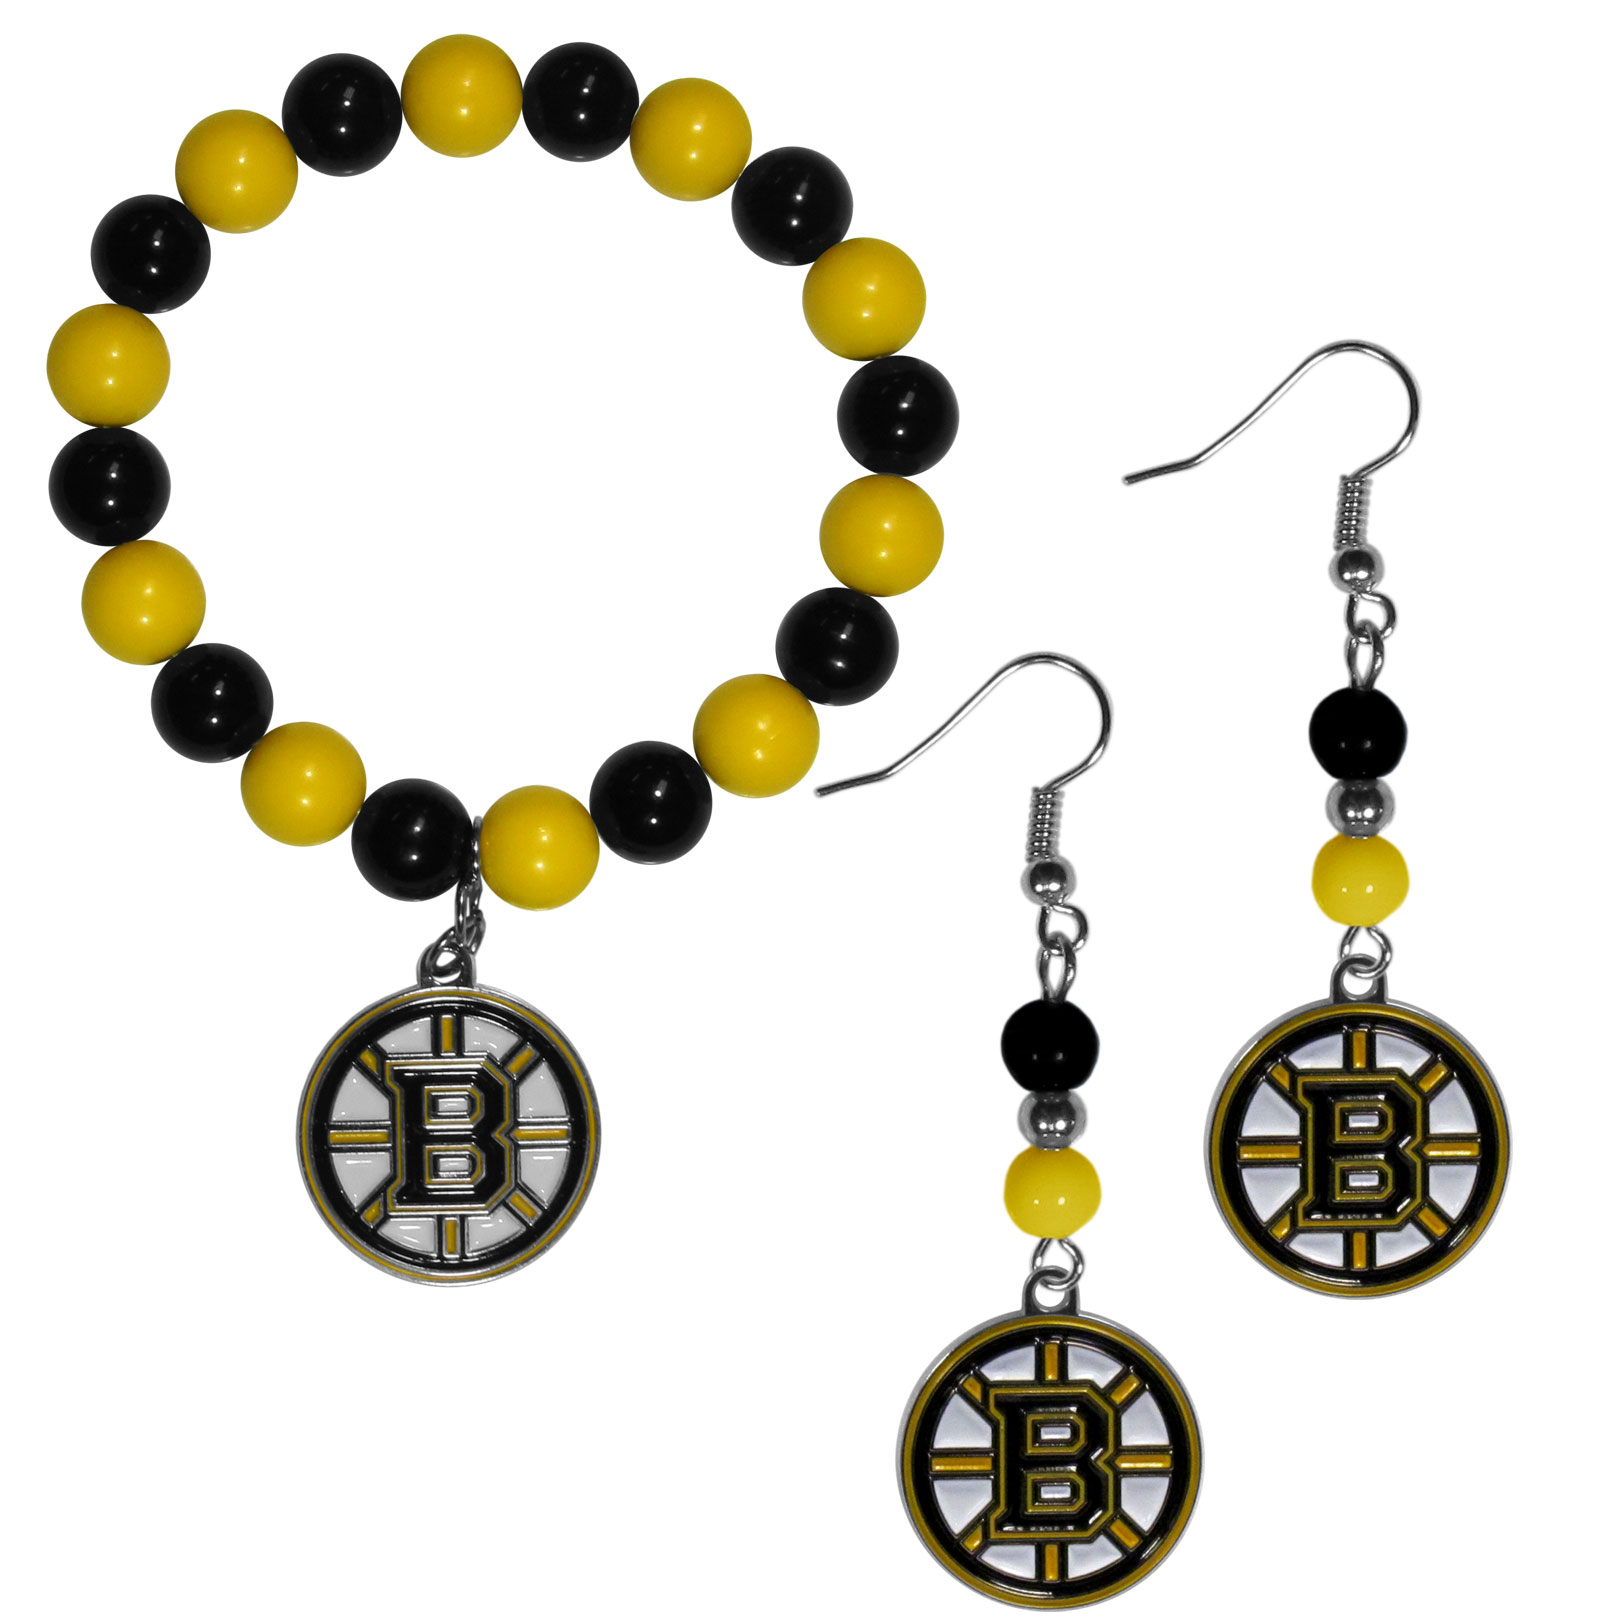 Boston Bruins® Fan Bead Earrings and Bracelet Set - This fun and colorful Boston Bruins® fan bead jewelry set is fun and casual with eye-catching beads in bright team colors. The fashionable dangle earrings feature a team colored beads that drop down to a carved and enameled charm. The stretch bracelet has larger matching beads that make a striking statement and have a matching team charm. These sassy yet sporty jewelry pieces make a perfect gift for any female fan. Spice up your game-day outfit with these fun colorful earrings and bracelet that are also cute enough for any day.